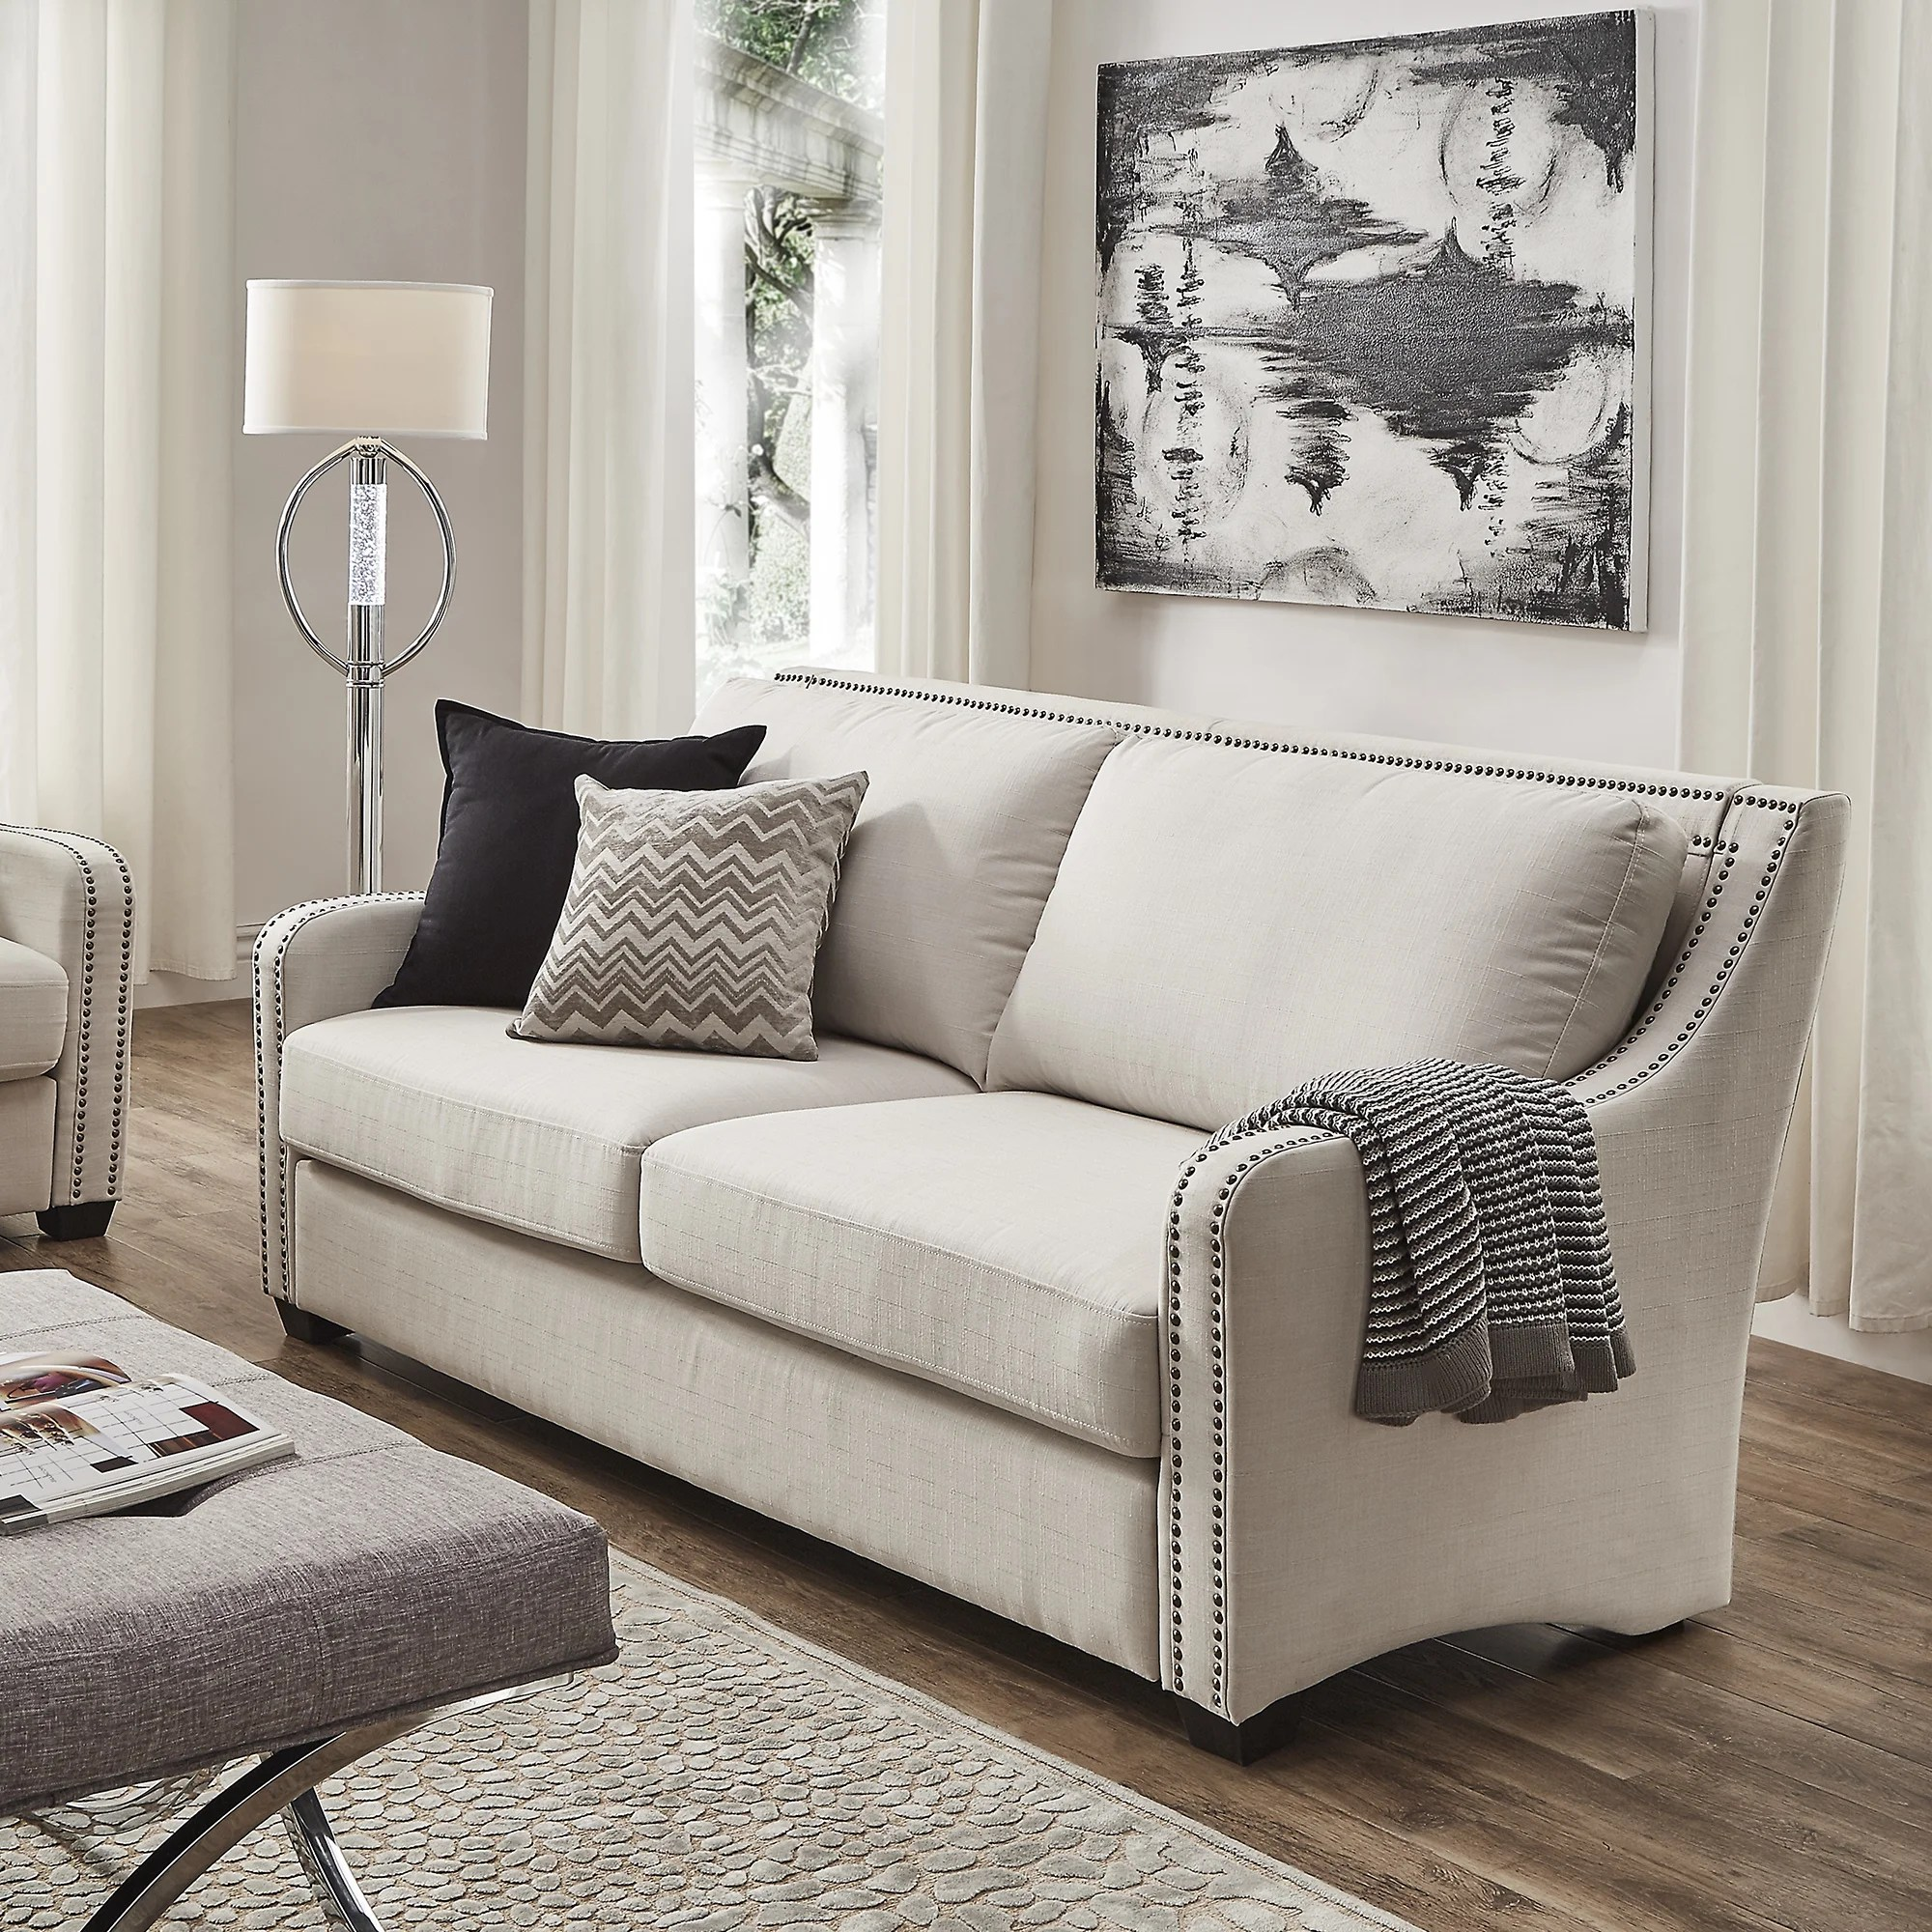 Couch Shabby Chic Buy Shabby Chic Sofas Couches Online At Overstock Our Best